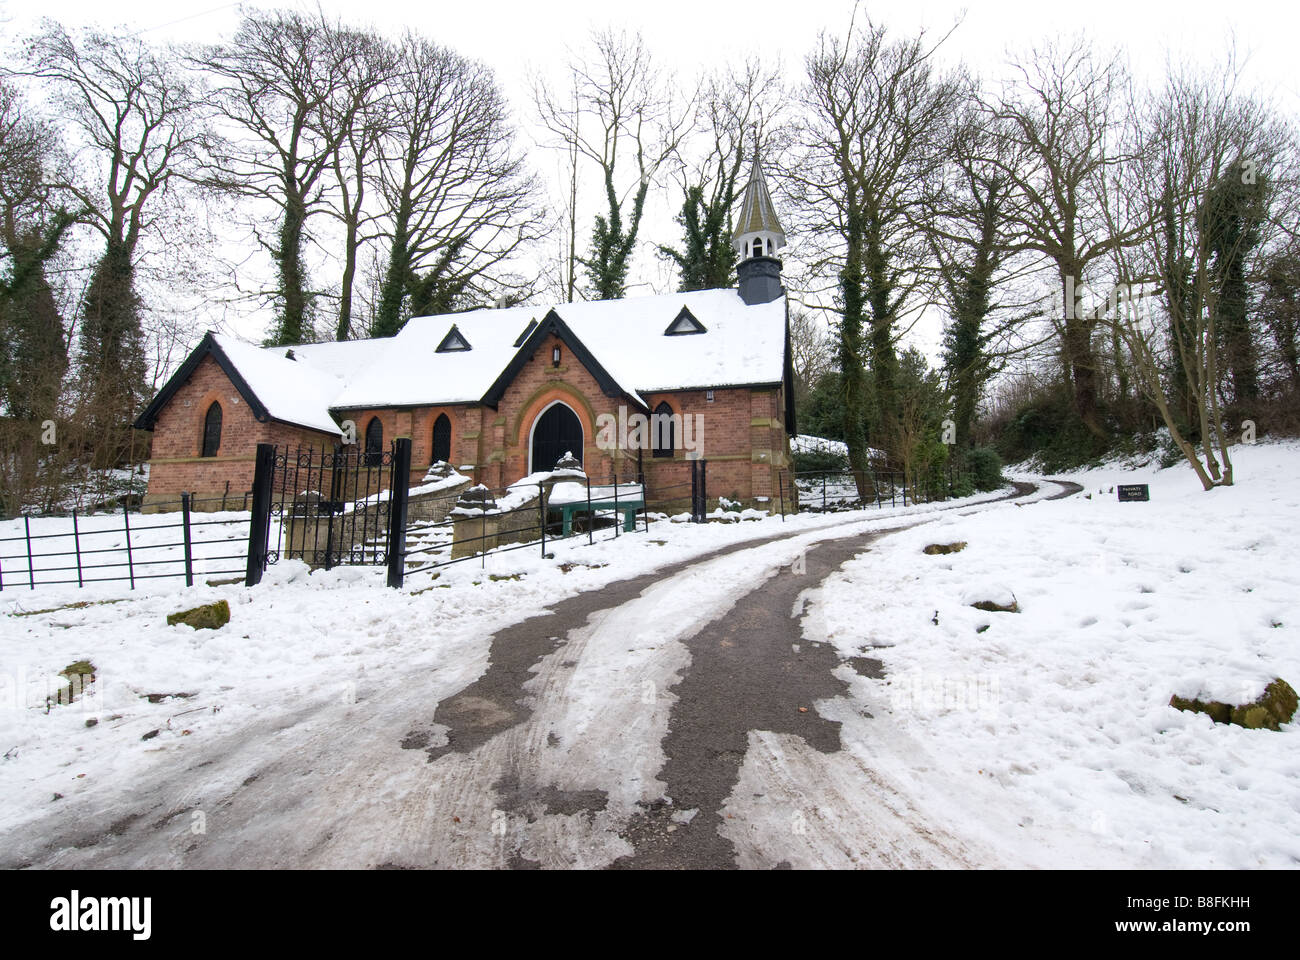 The church of St. Chad, with snow, Church of England church, Mansfield Woodhouse, Nottinghamshire, England - Stock Image